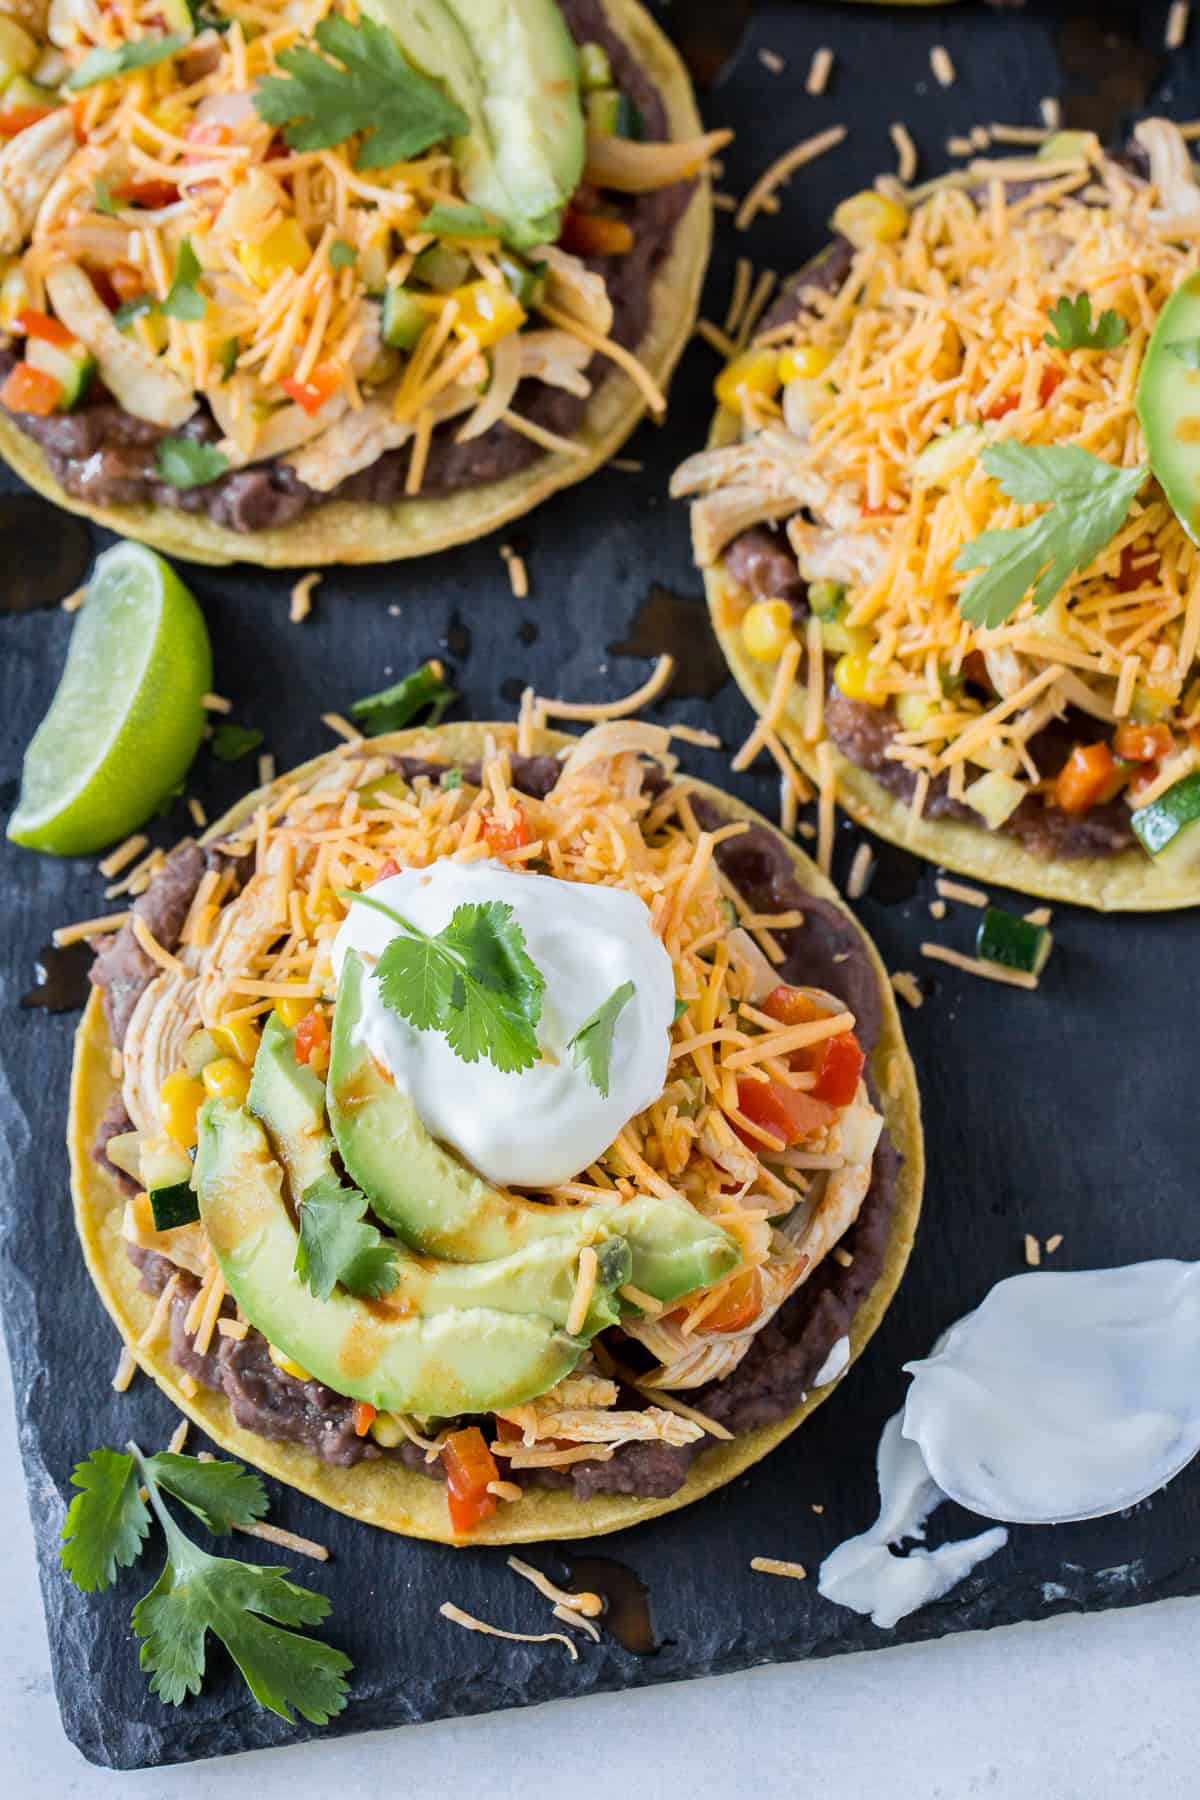 Tostadas topped with cheese, sour cream and avocado.